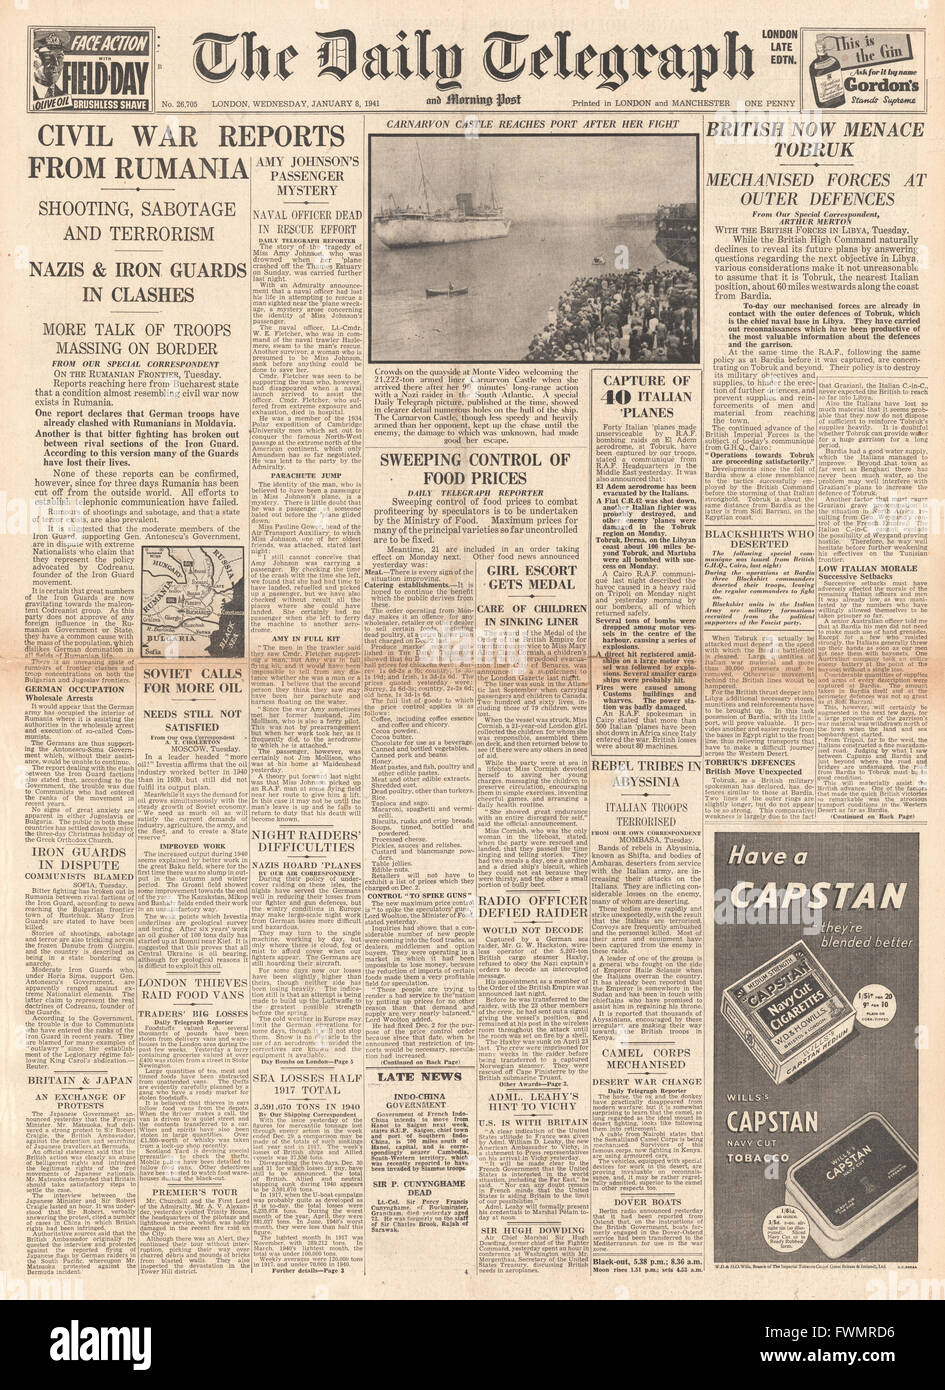 1941 front page Daily Telegraph British Army advance on Tobruk, Civil War reports from Romania and Ministry of Food - Stock Image